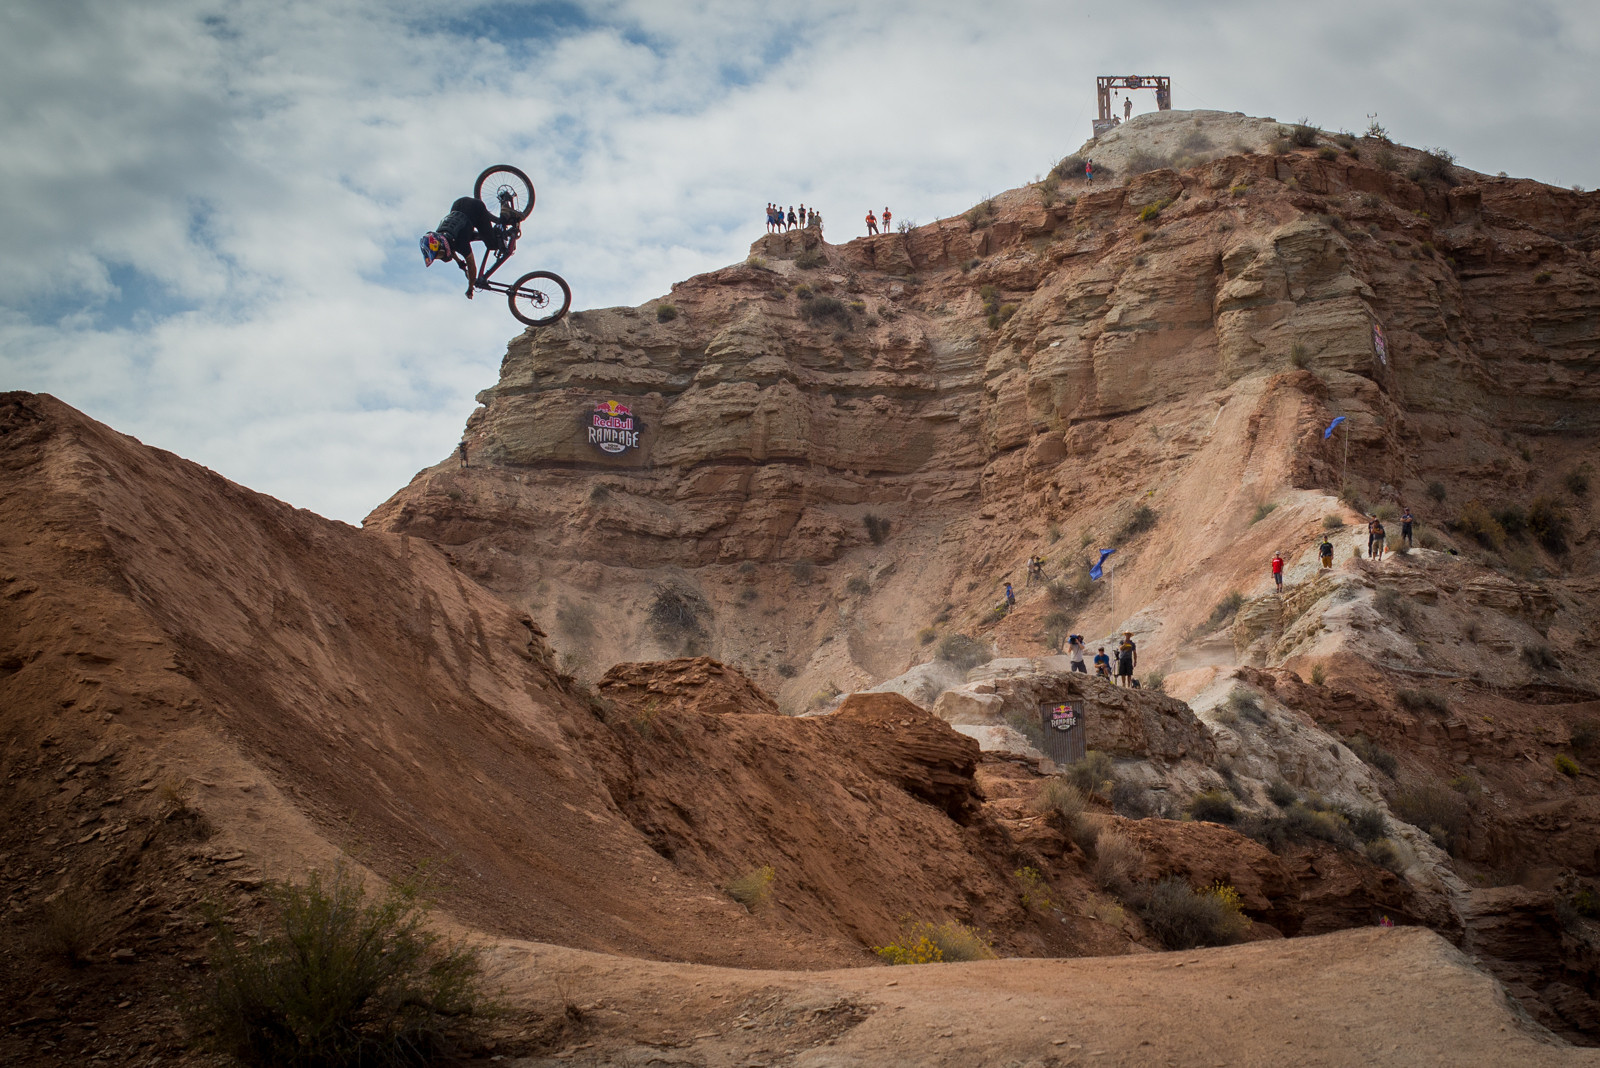 Andreu Lacondeguy - 2015 Red Bull Rampage Finals - Mountain Biking Pictures - Vital MTB